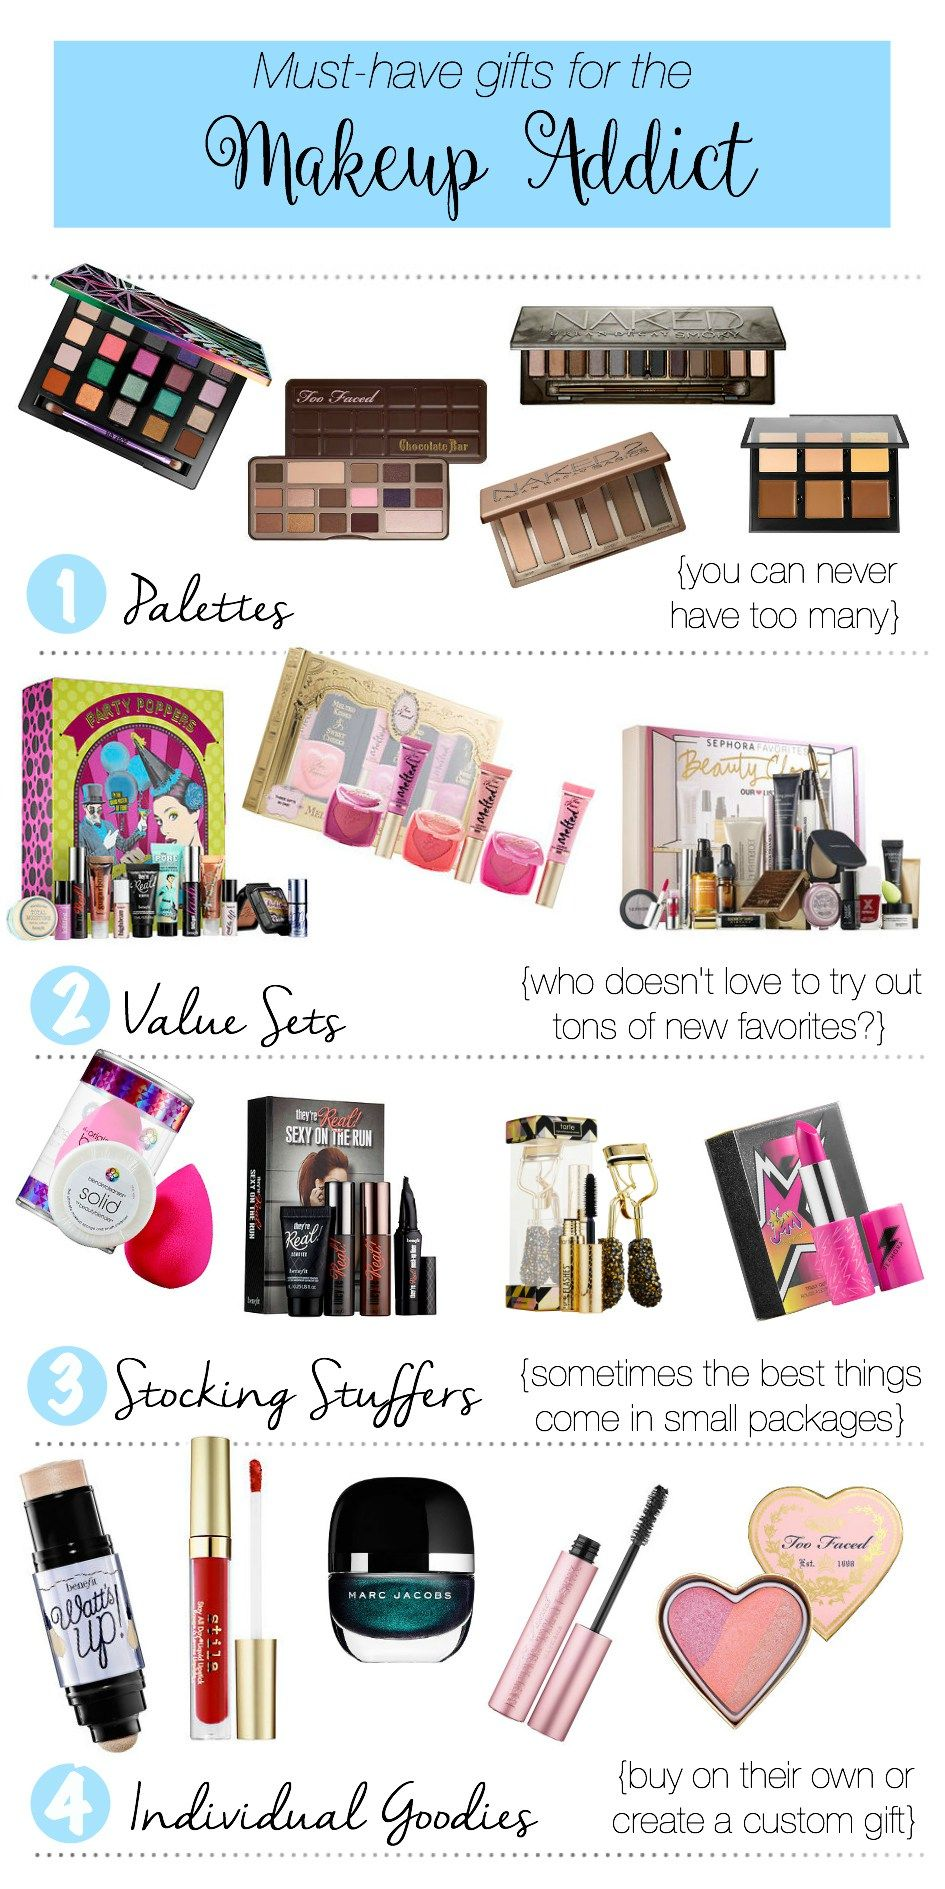 musthave gifts for the makeup addict Makeup artist kit